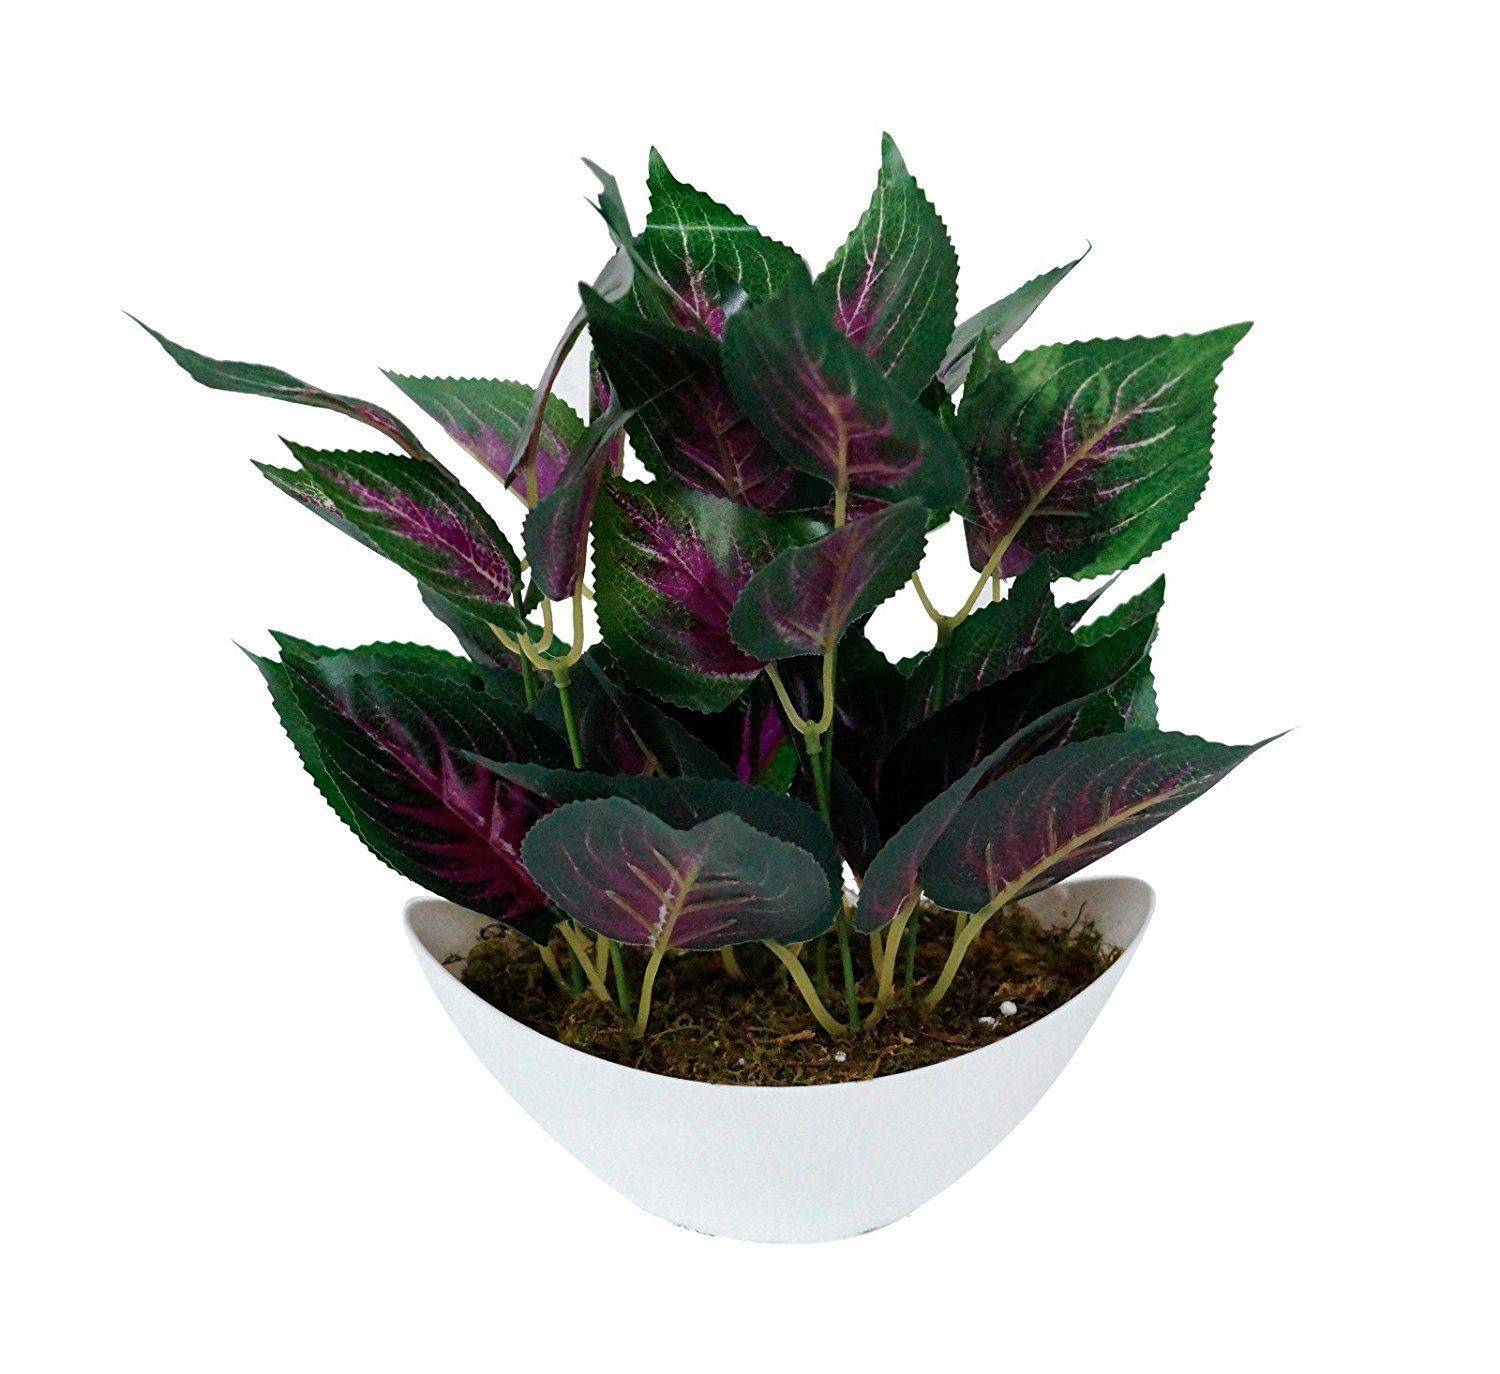 YUTIRITI Miniature Leaf Indoor Plant SDL 1